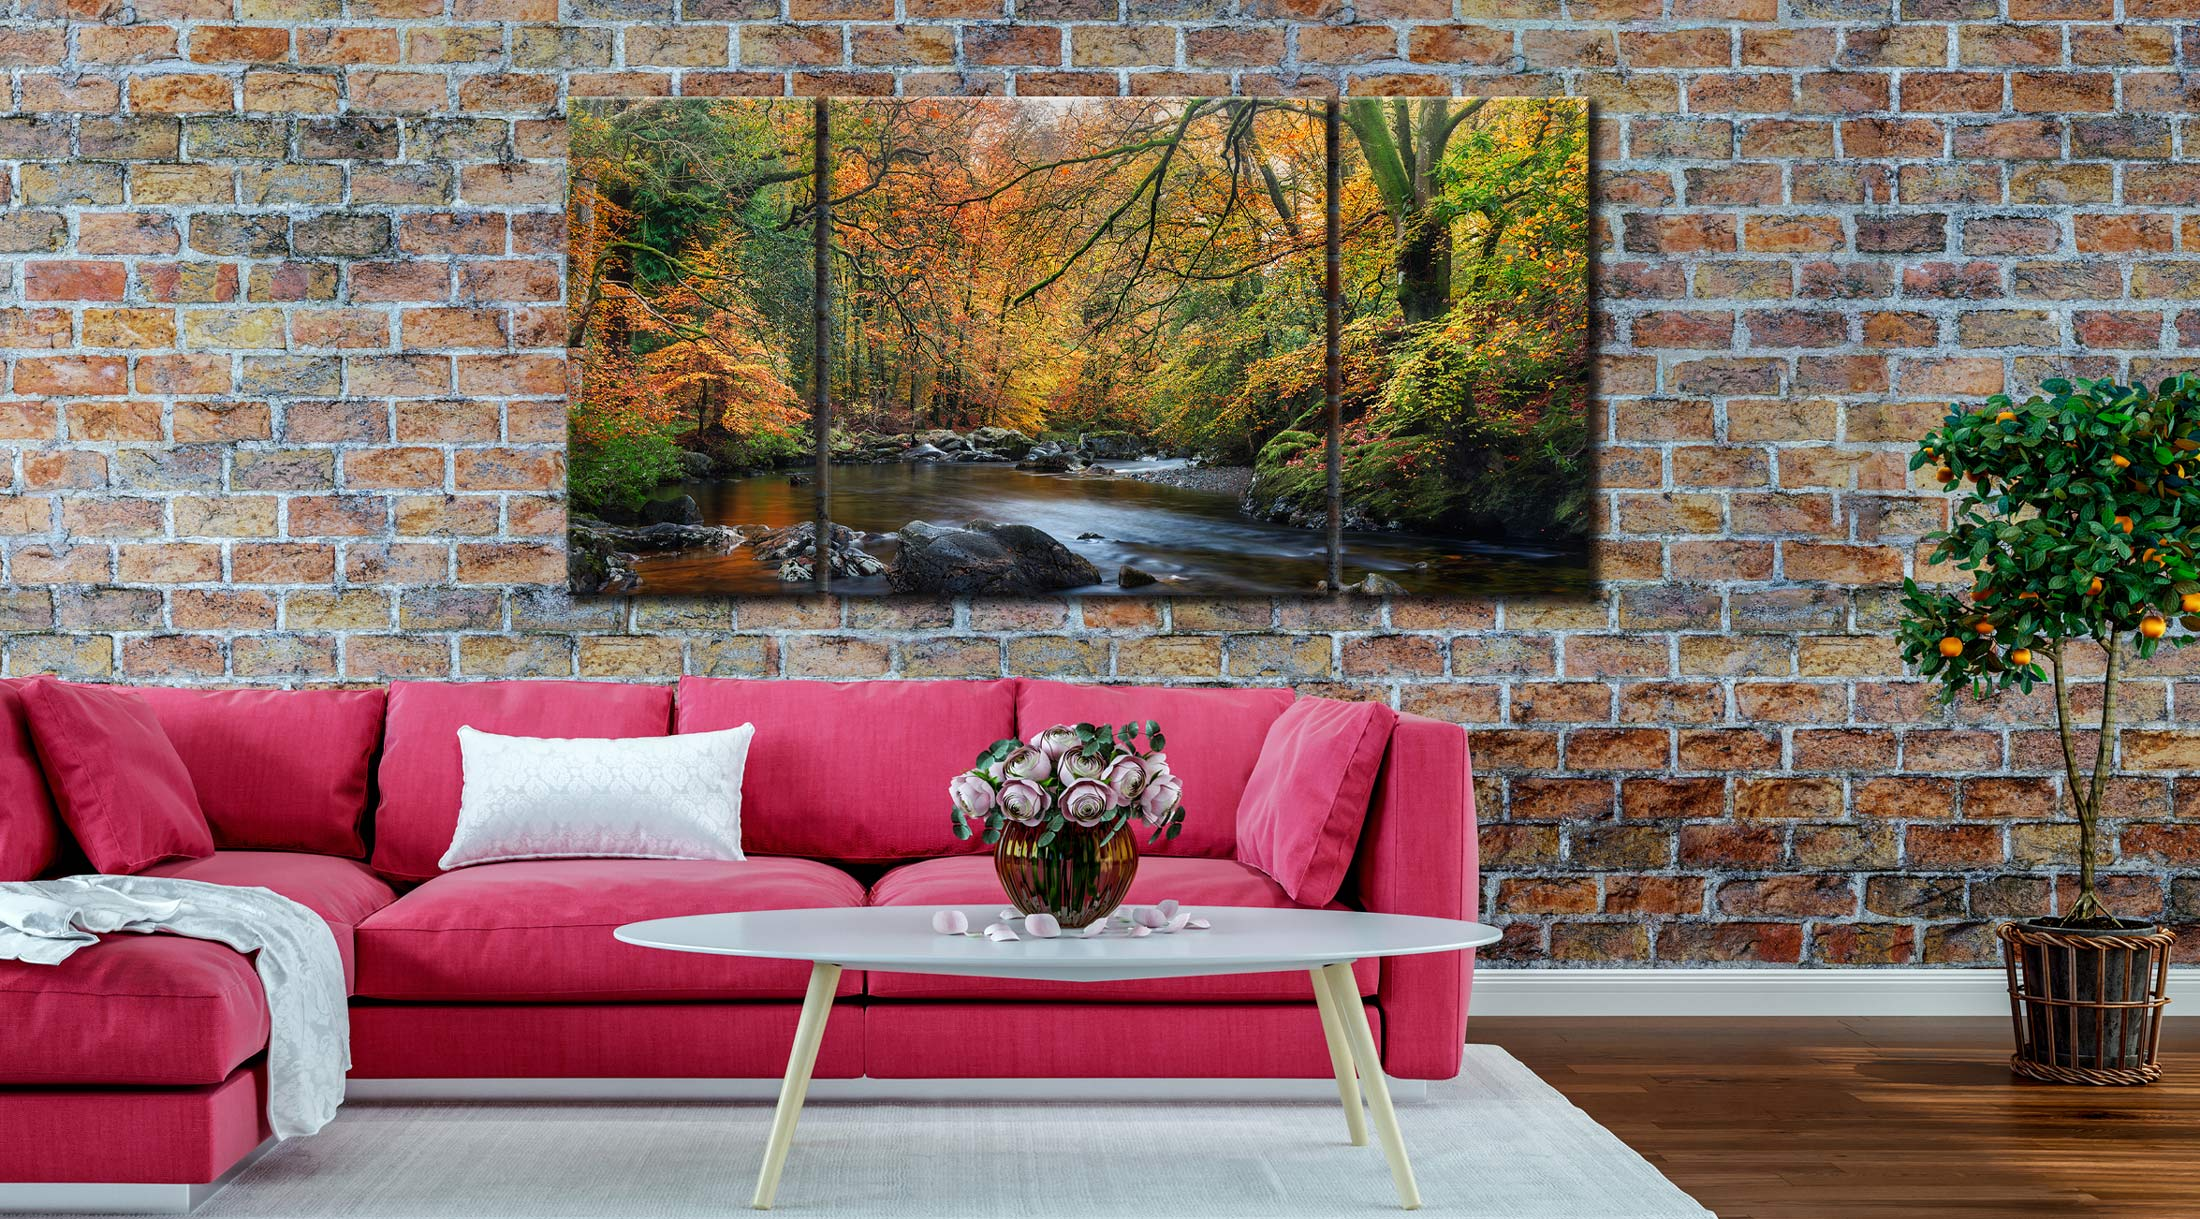 Golden Trees of Eskdale - 3 Panel Wide Centre Canvas on Wall